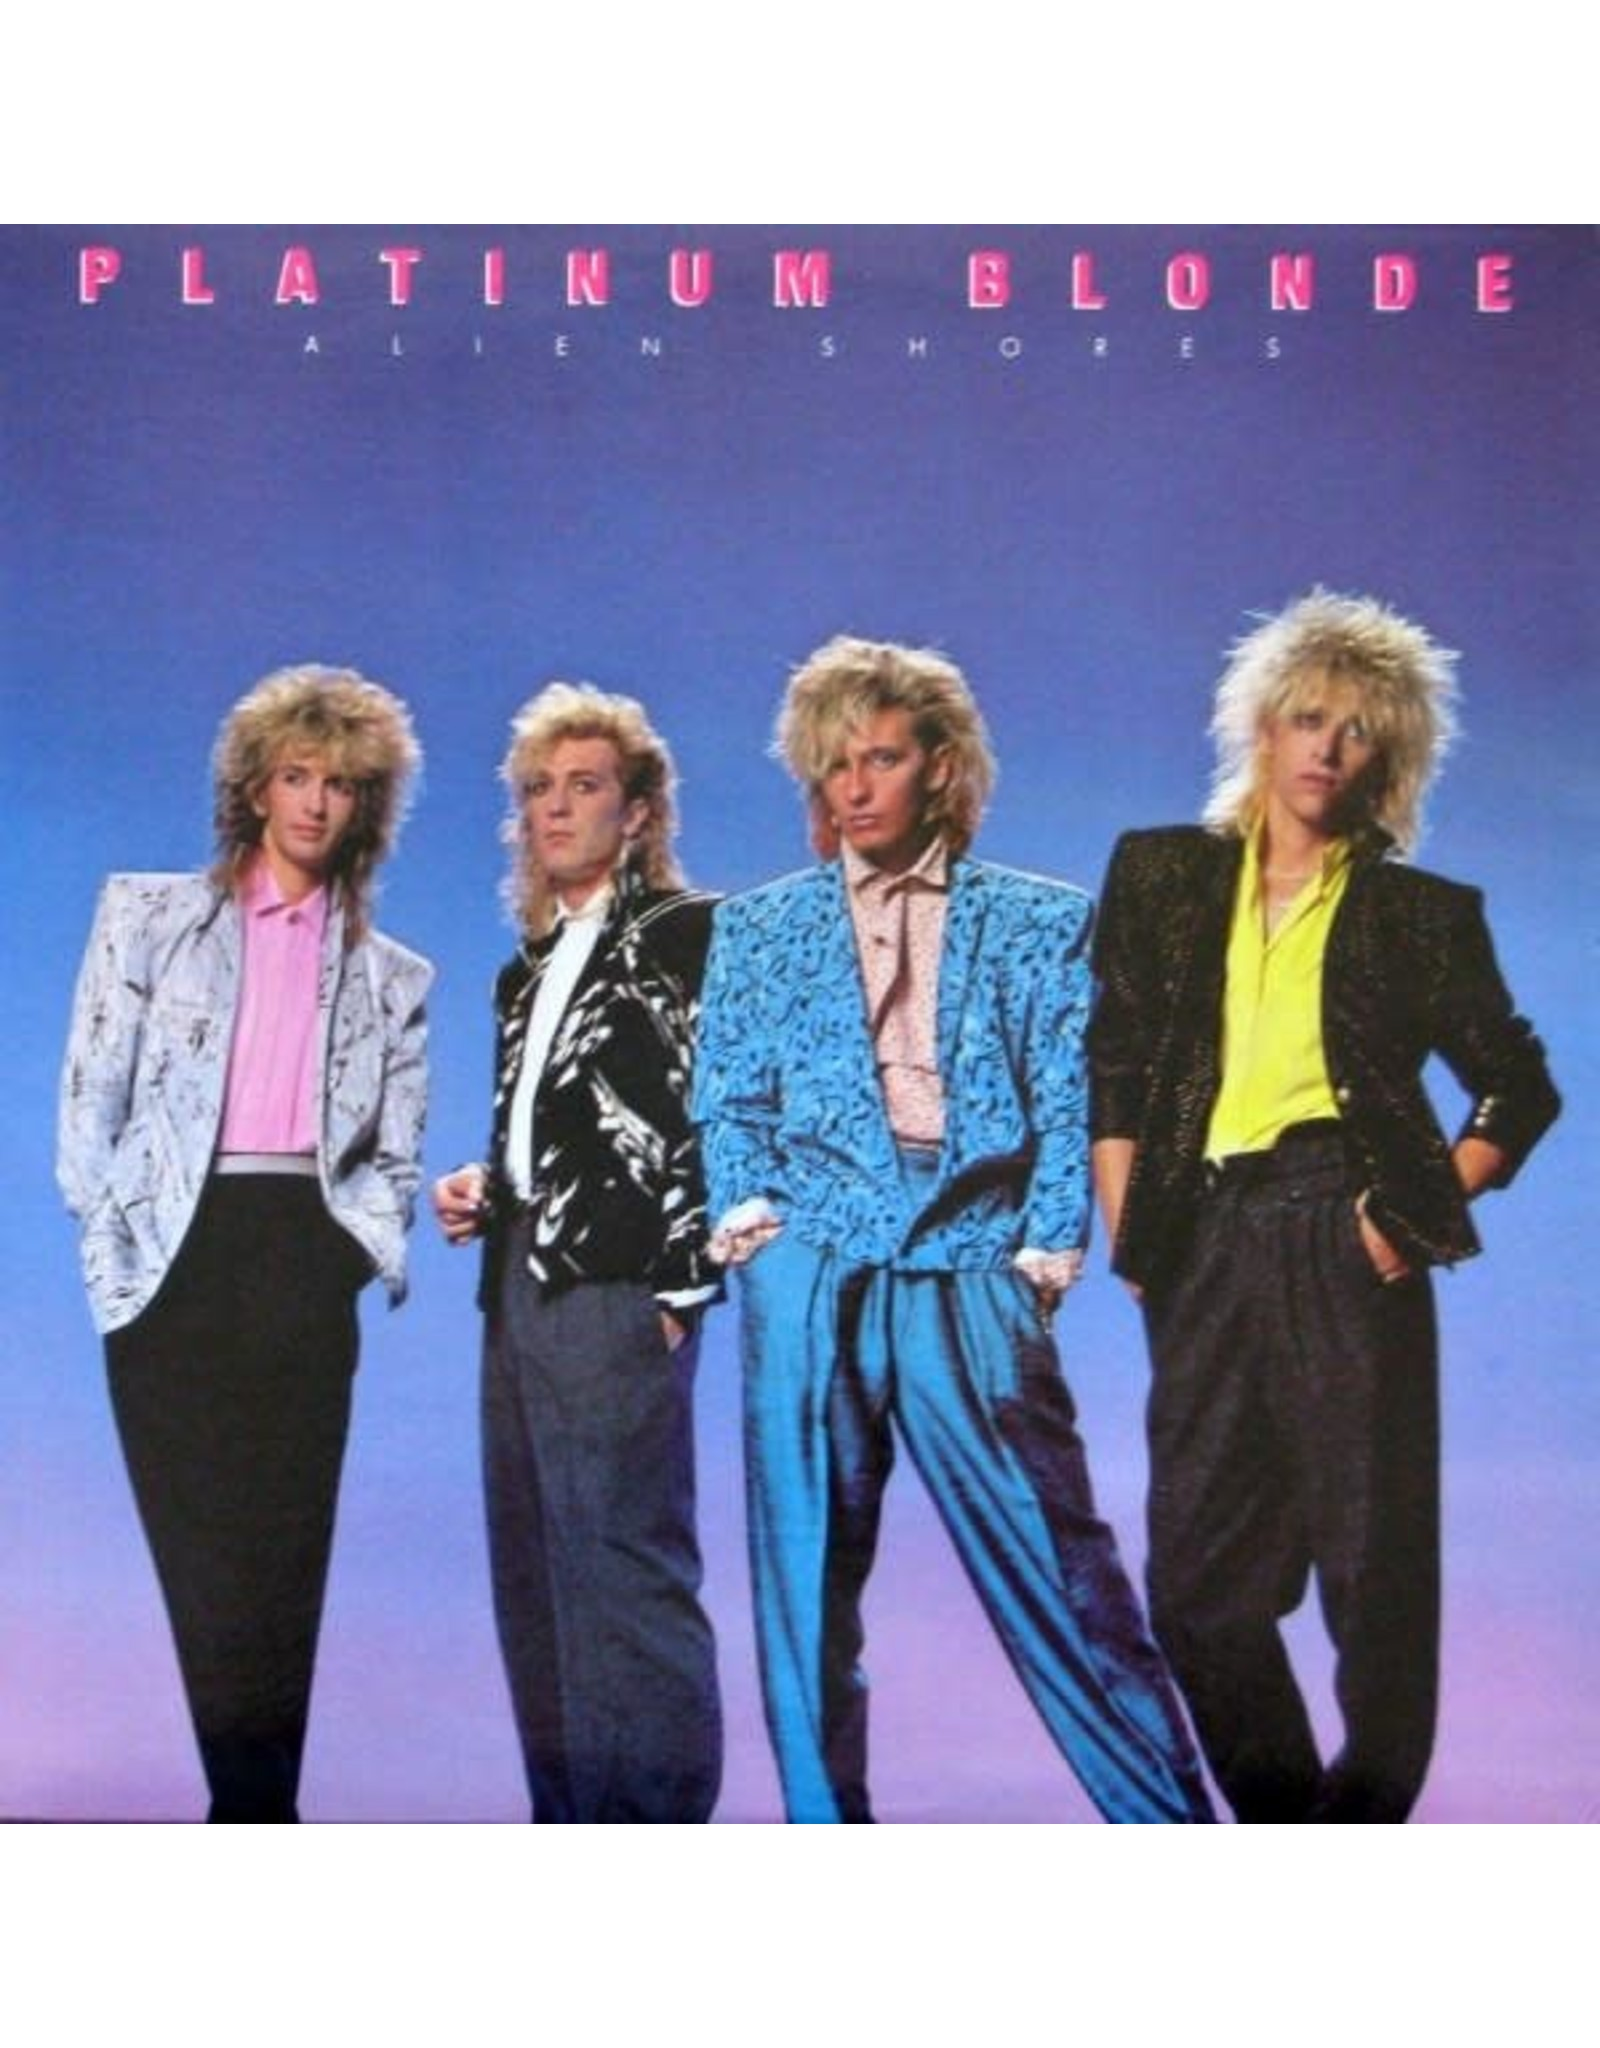 Platinum Blonde - Alien Shores LP